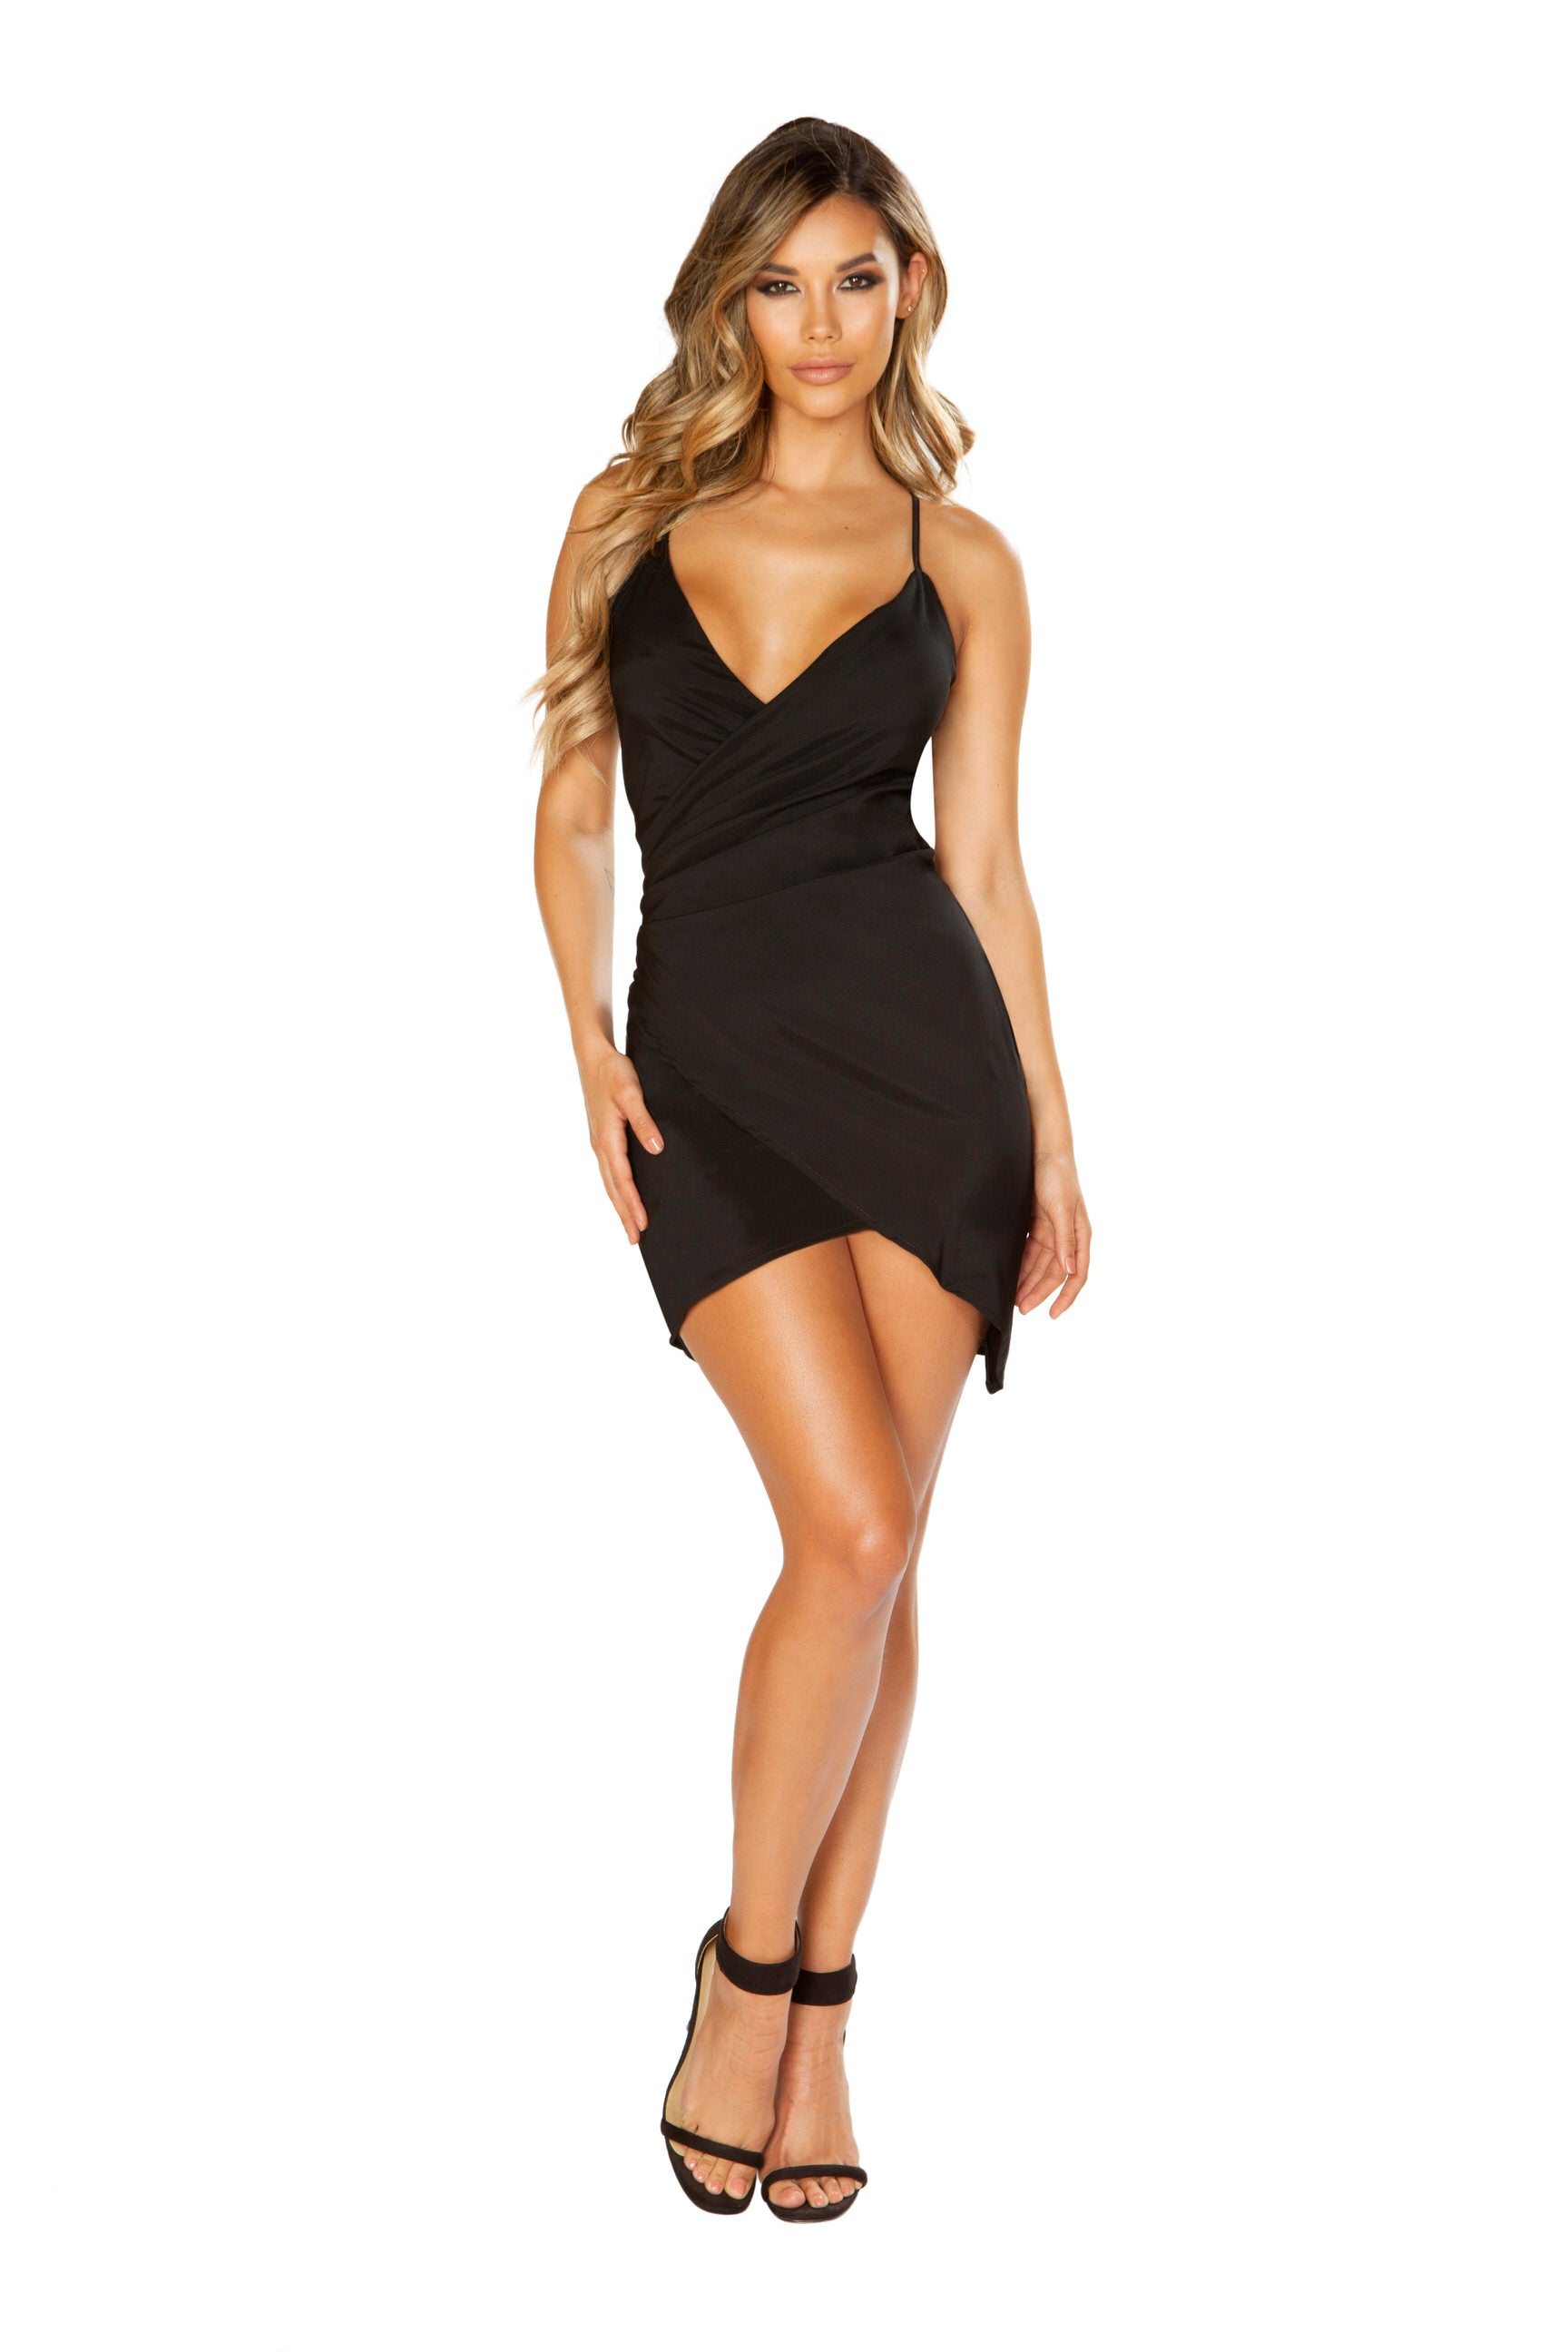 3644 - Spaghetti Strap Satin Dress with Overlapping Scrunch Detail ${description} | Roma Costume and Roma Confidential wholesale manufacturer of Women Apparel bulk world wide wholesale and world wide drop ship services for Adult Halloween Costumes, Sexy and Elegant Lingerie, Rave Clothing, Club wear, and Christmas Costumes. Mini Dresses, Roma Costume, Inc., Roma Costume, Roma Confidential, Wholesale clothing, drop ship, drop ship service, Wholesale Lingerie, Wholesale Adult Halloween Costumes, Rave Clothing, EDM Clothing, Festival Wear, Christmas Costumes, Clubwear, Club wear.